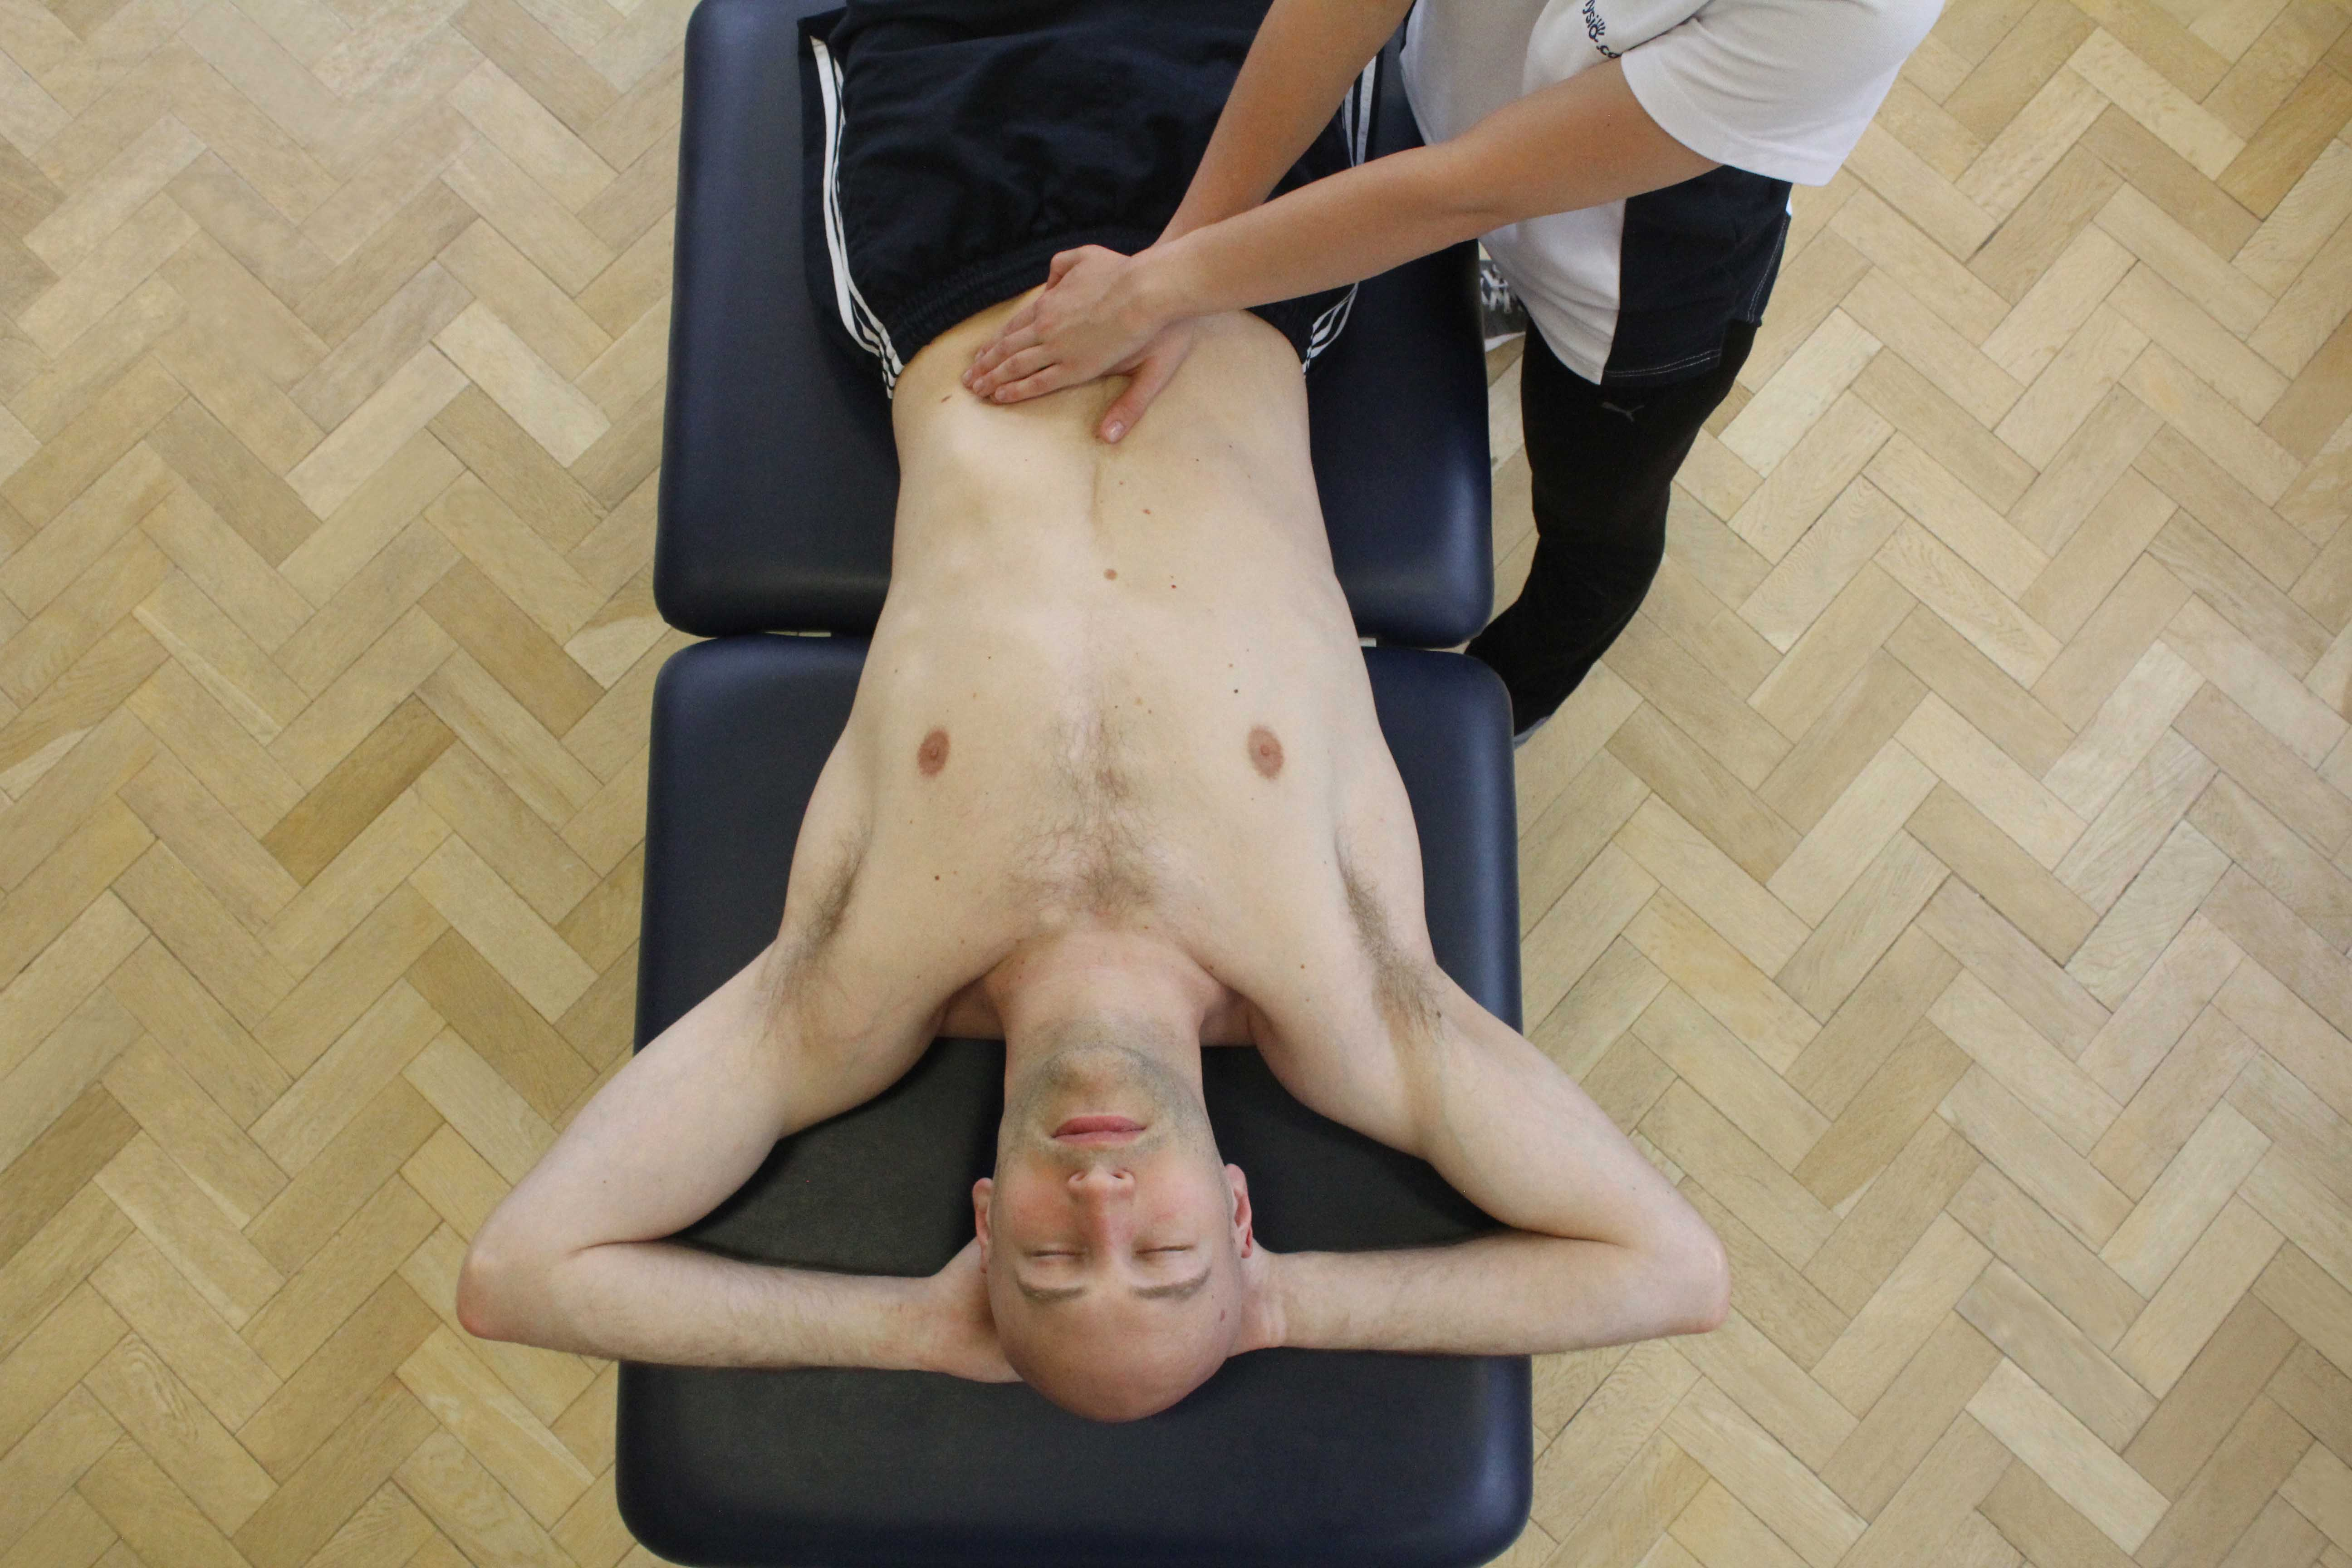 Mobilisations and stretches of the connective tissues in the hand and wrist by a neurological physiotherapist